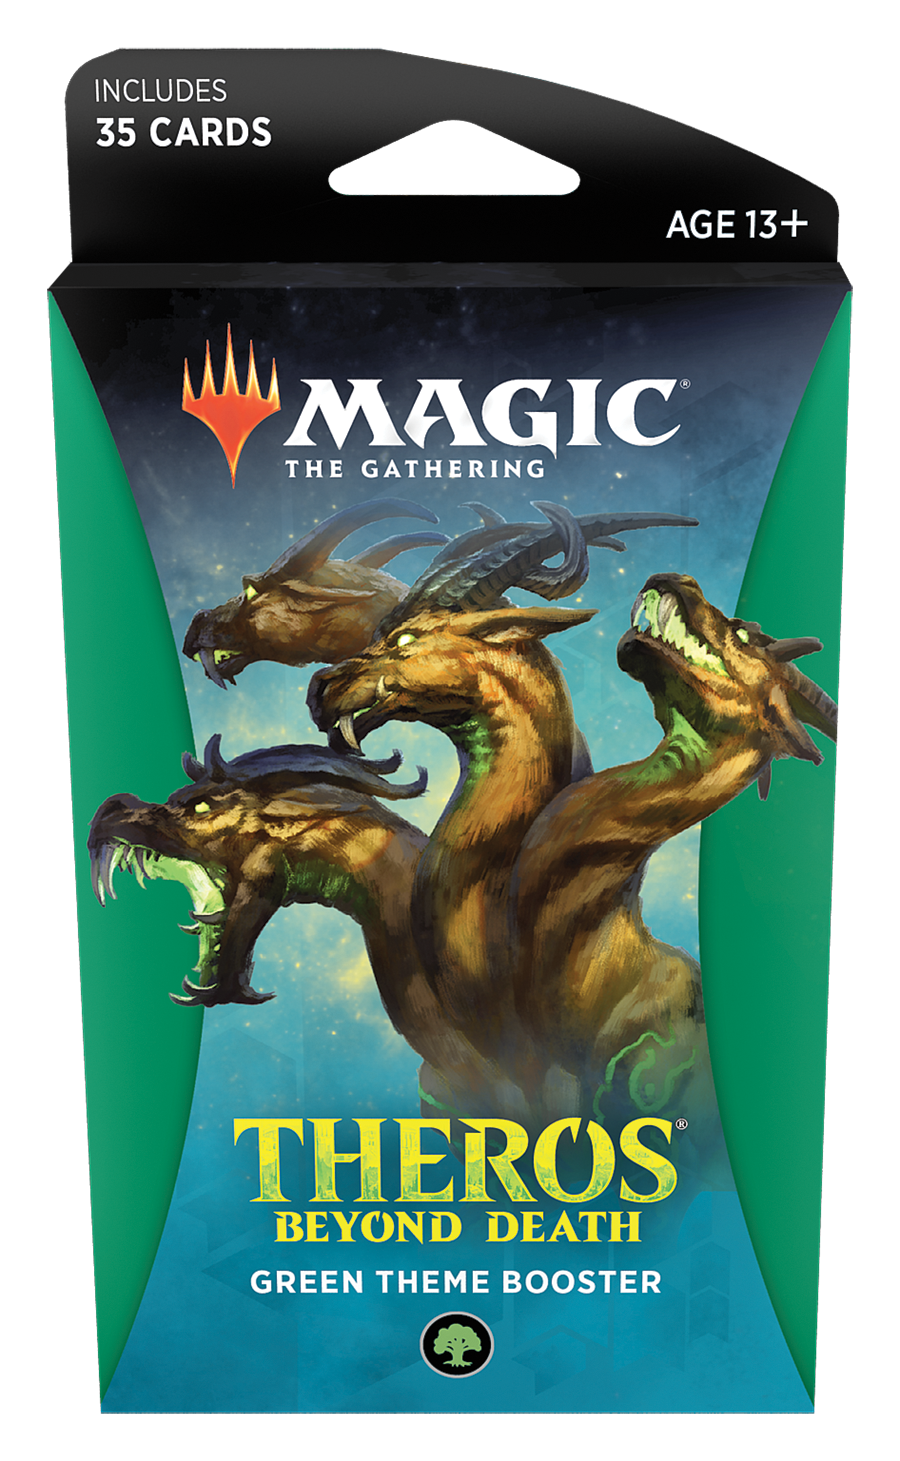 Magic The Gathering: Theros Beyond Death Theme Booster- Green image